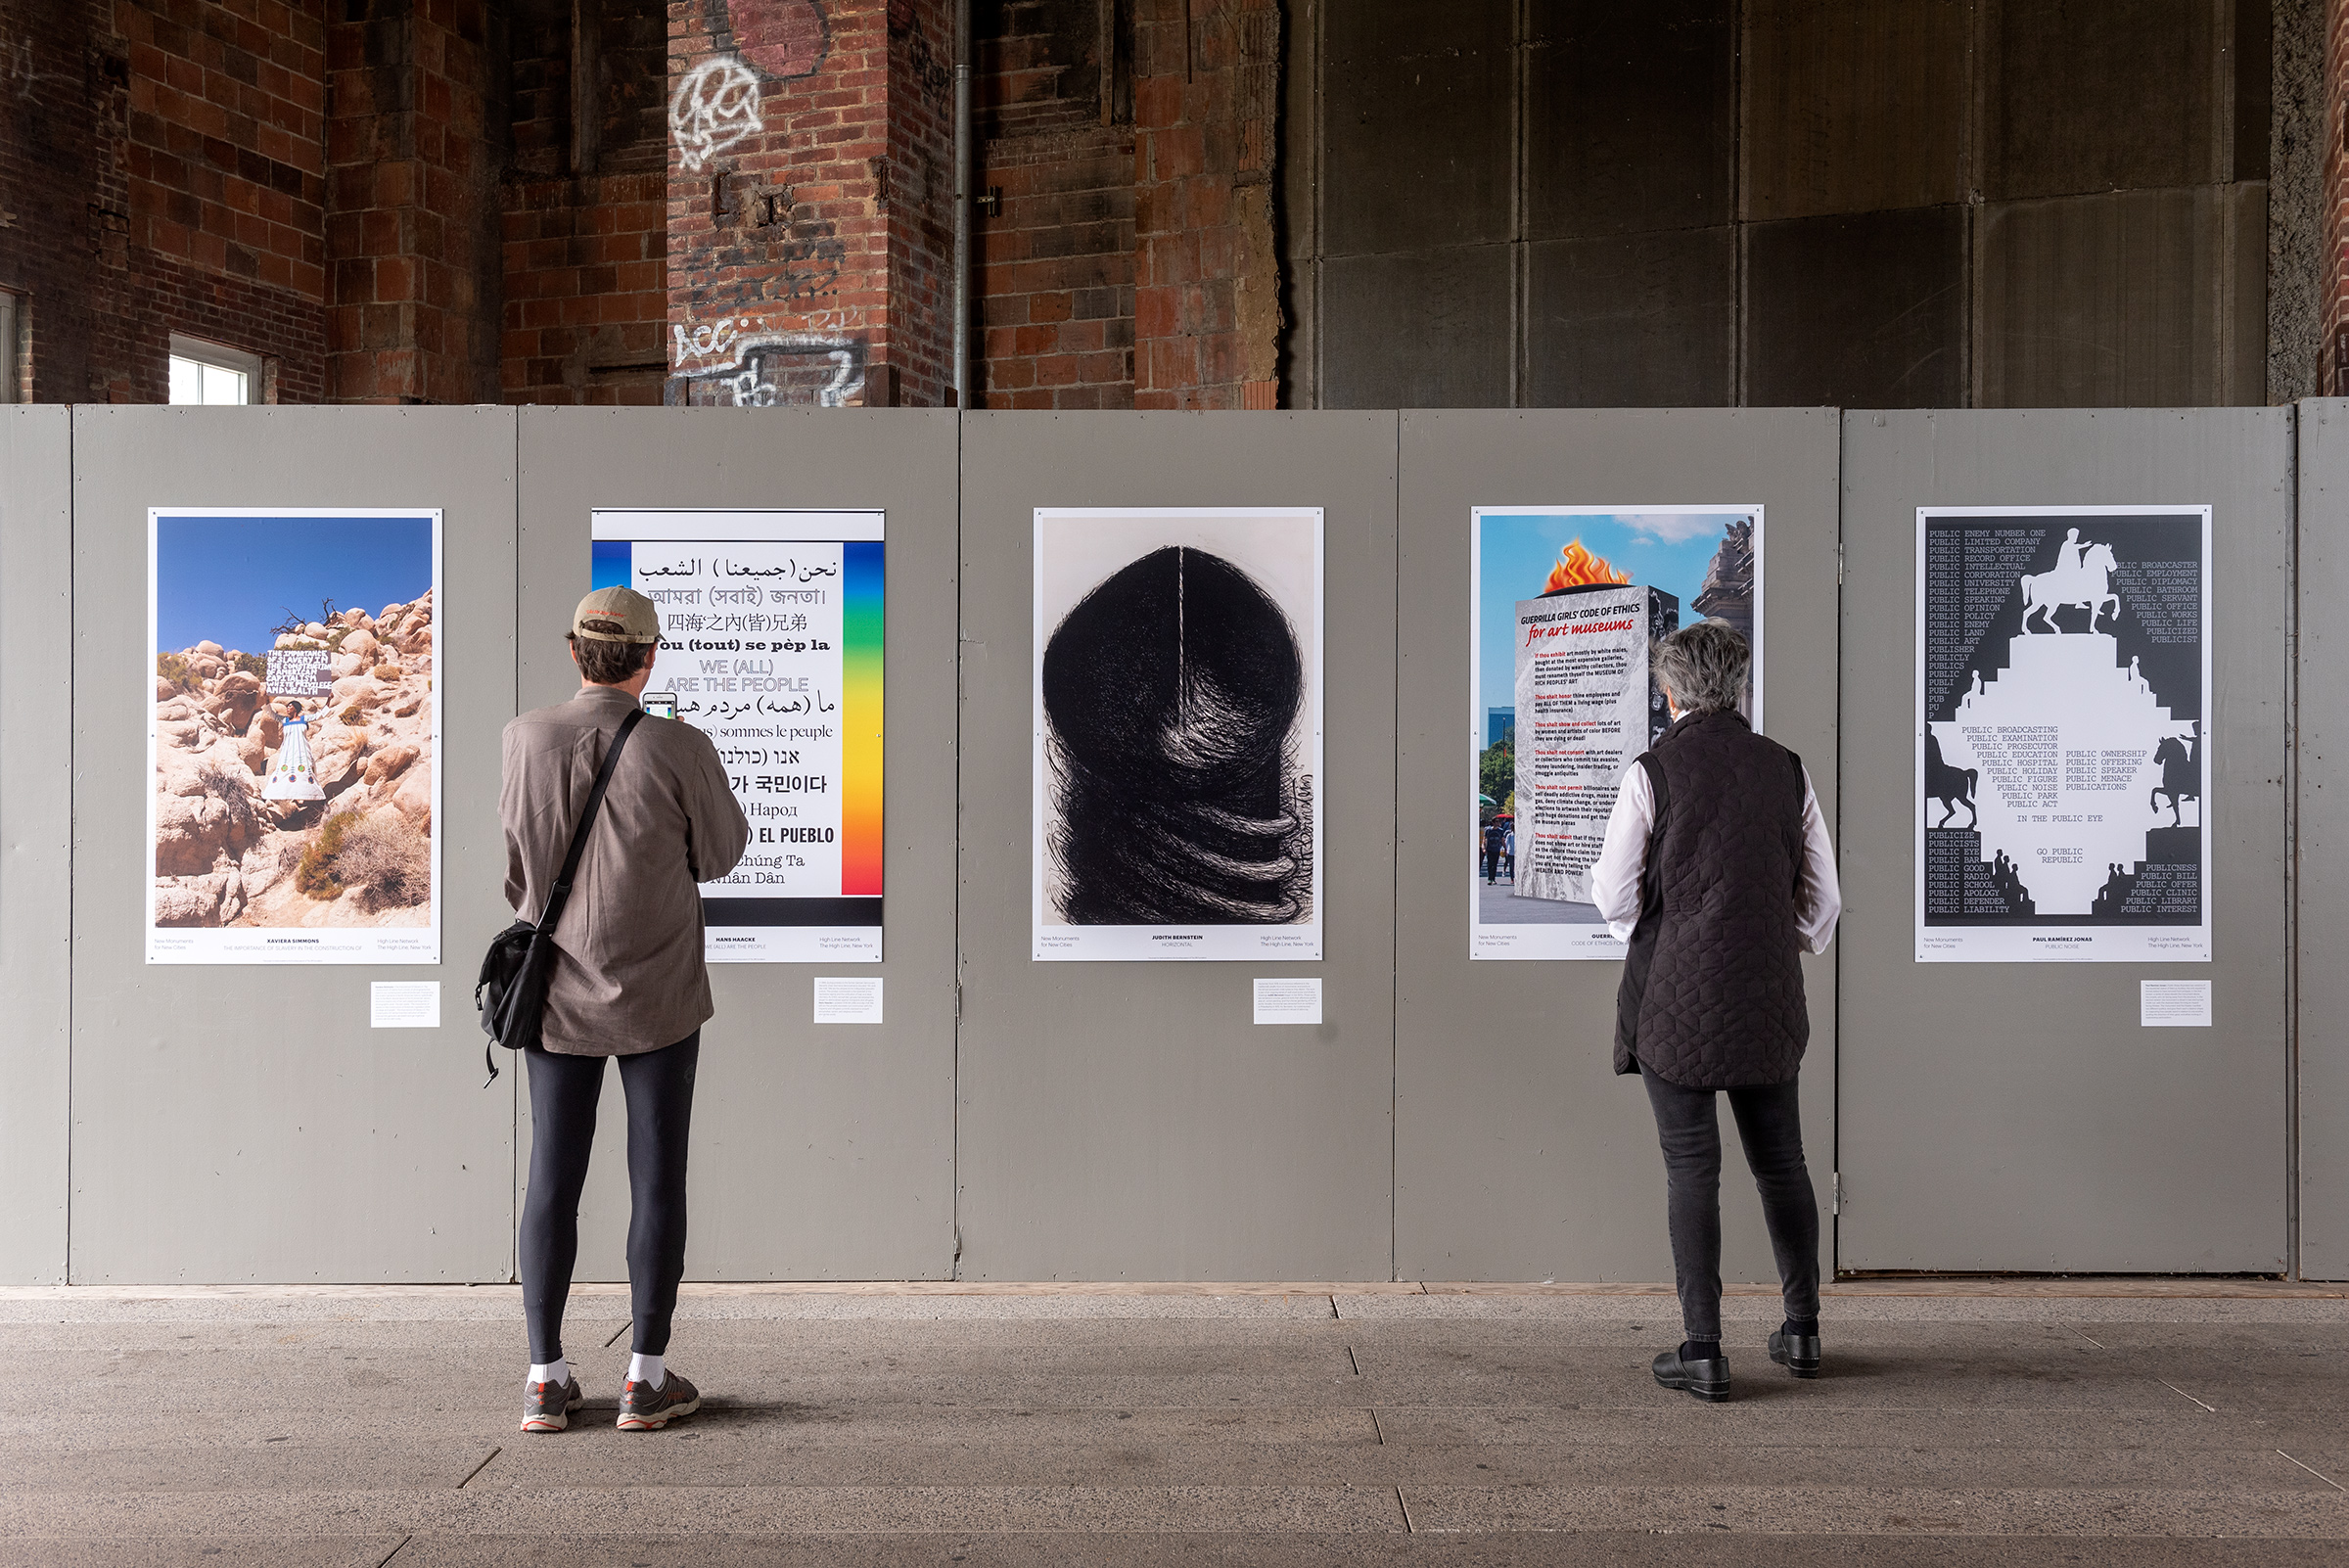 People looking at posters on a wall